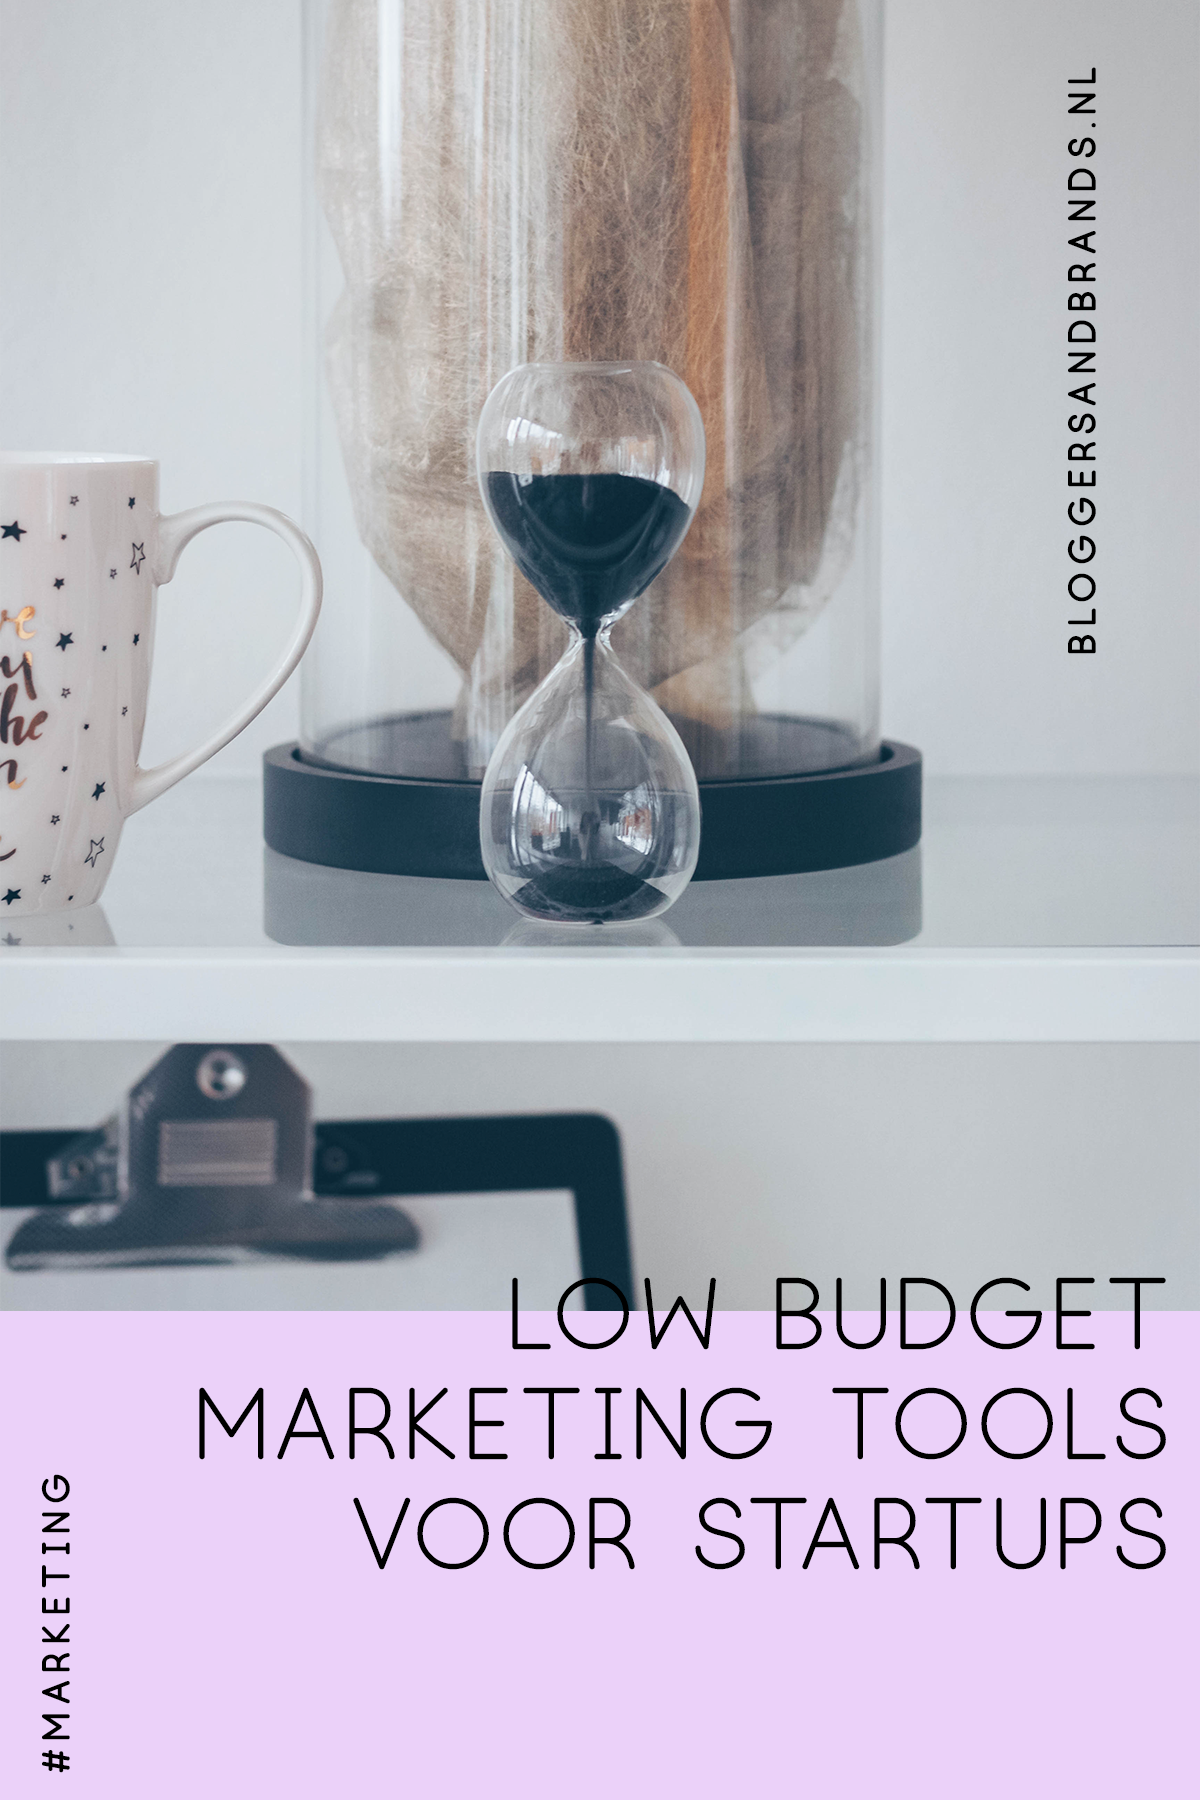 low budget marketing tools voor startups